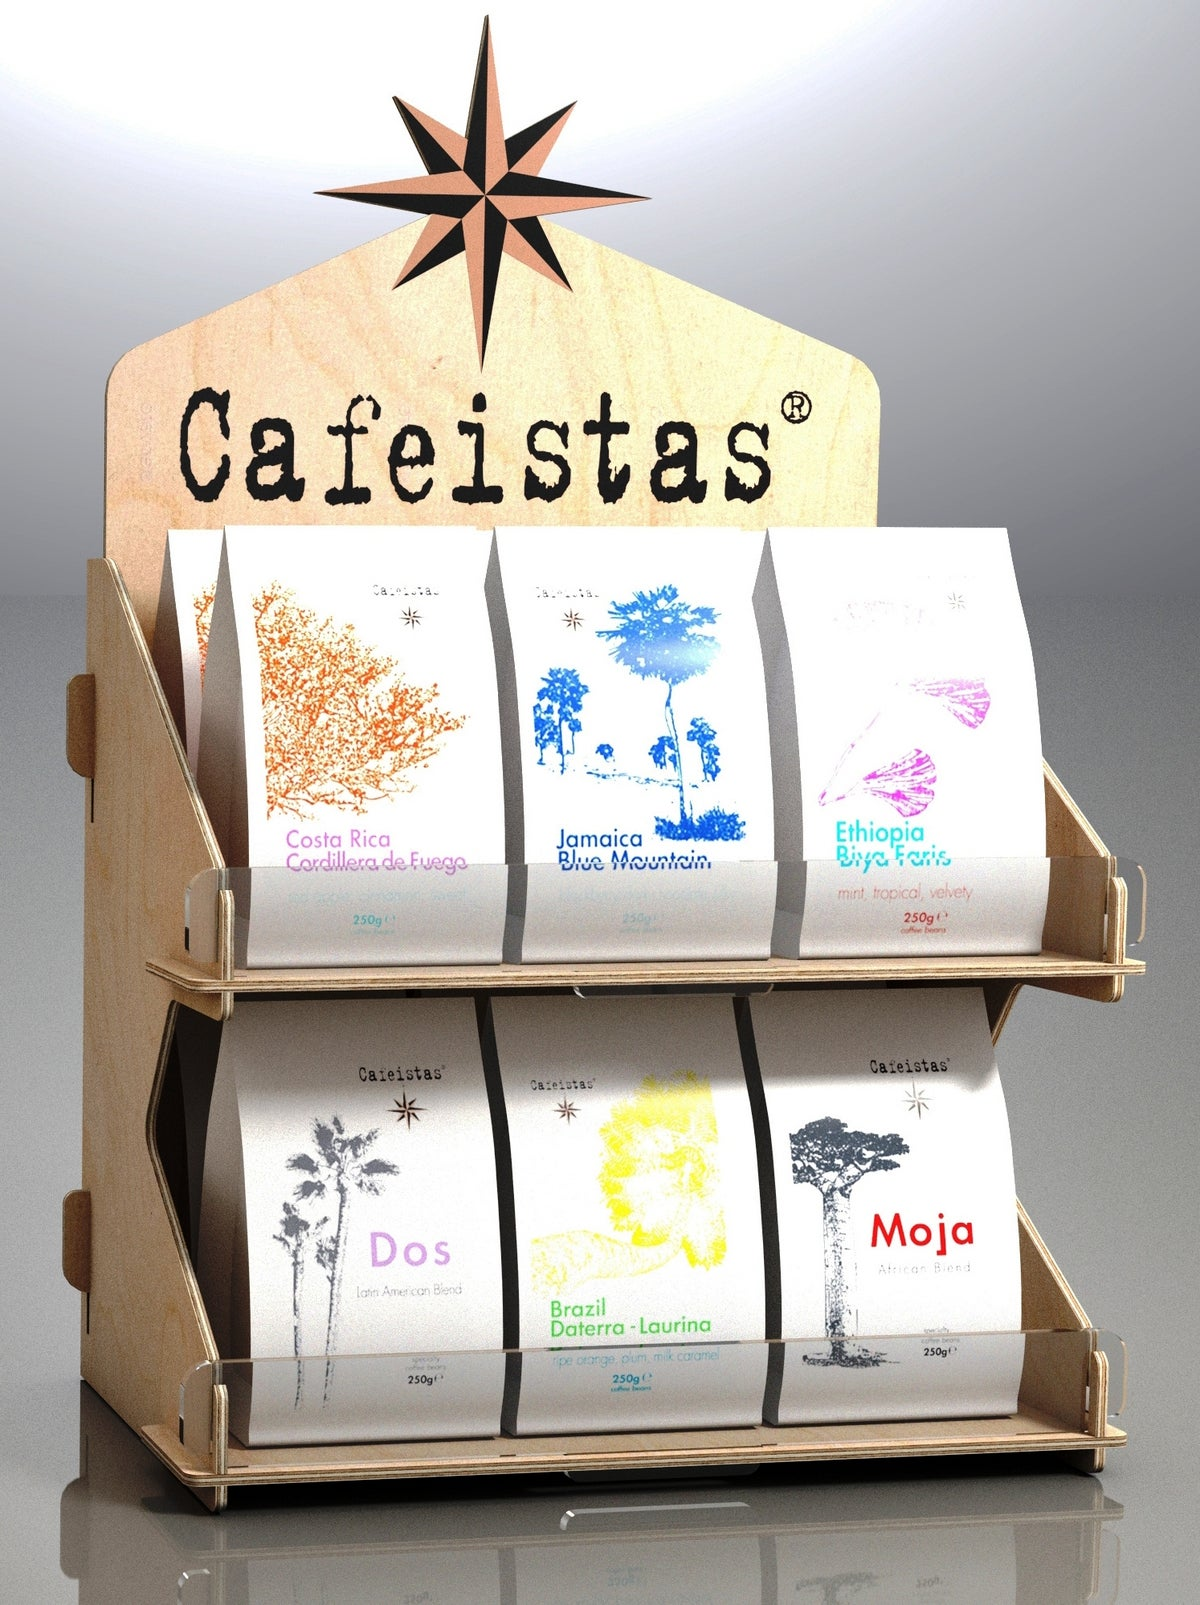 Image of cafeistas promo stand